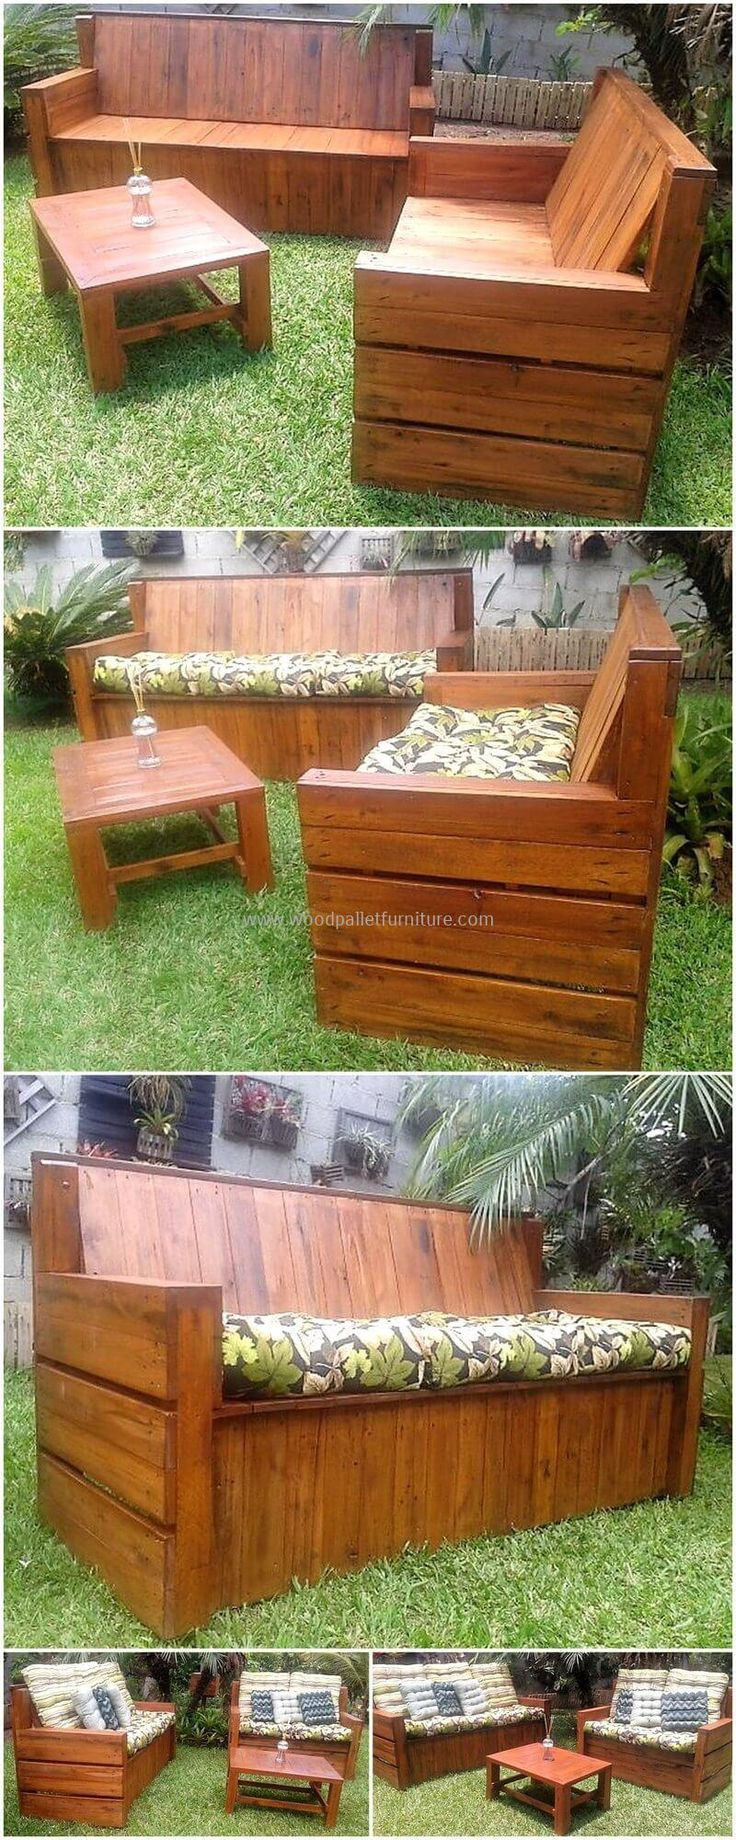 This garden wooden pallet furniture set is so appealing and incredible plan to be created for your beautiful garden. The wooden texture of this pallets project is letting the whole environment to breathe. Craft this furniture set to fulfill your seating needs in your garden.